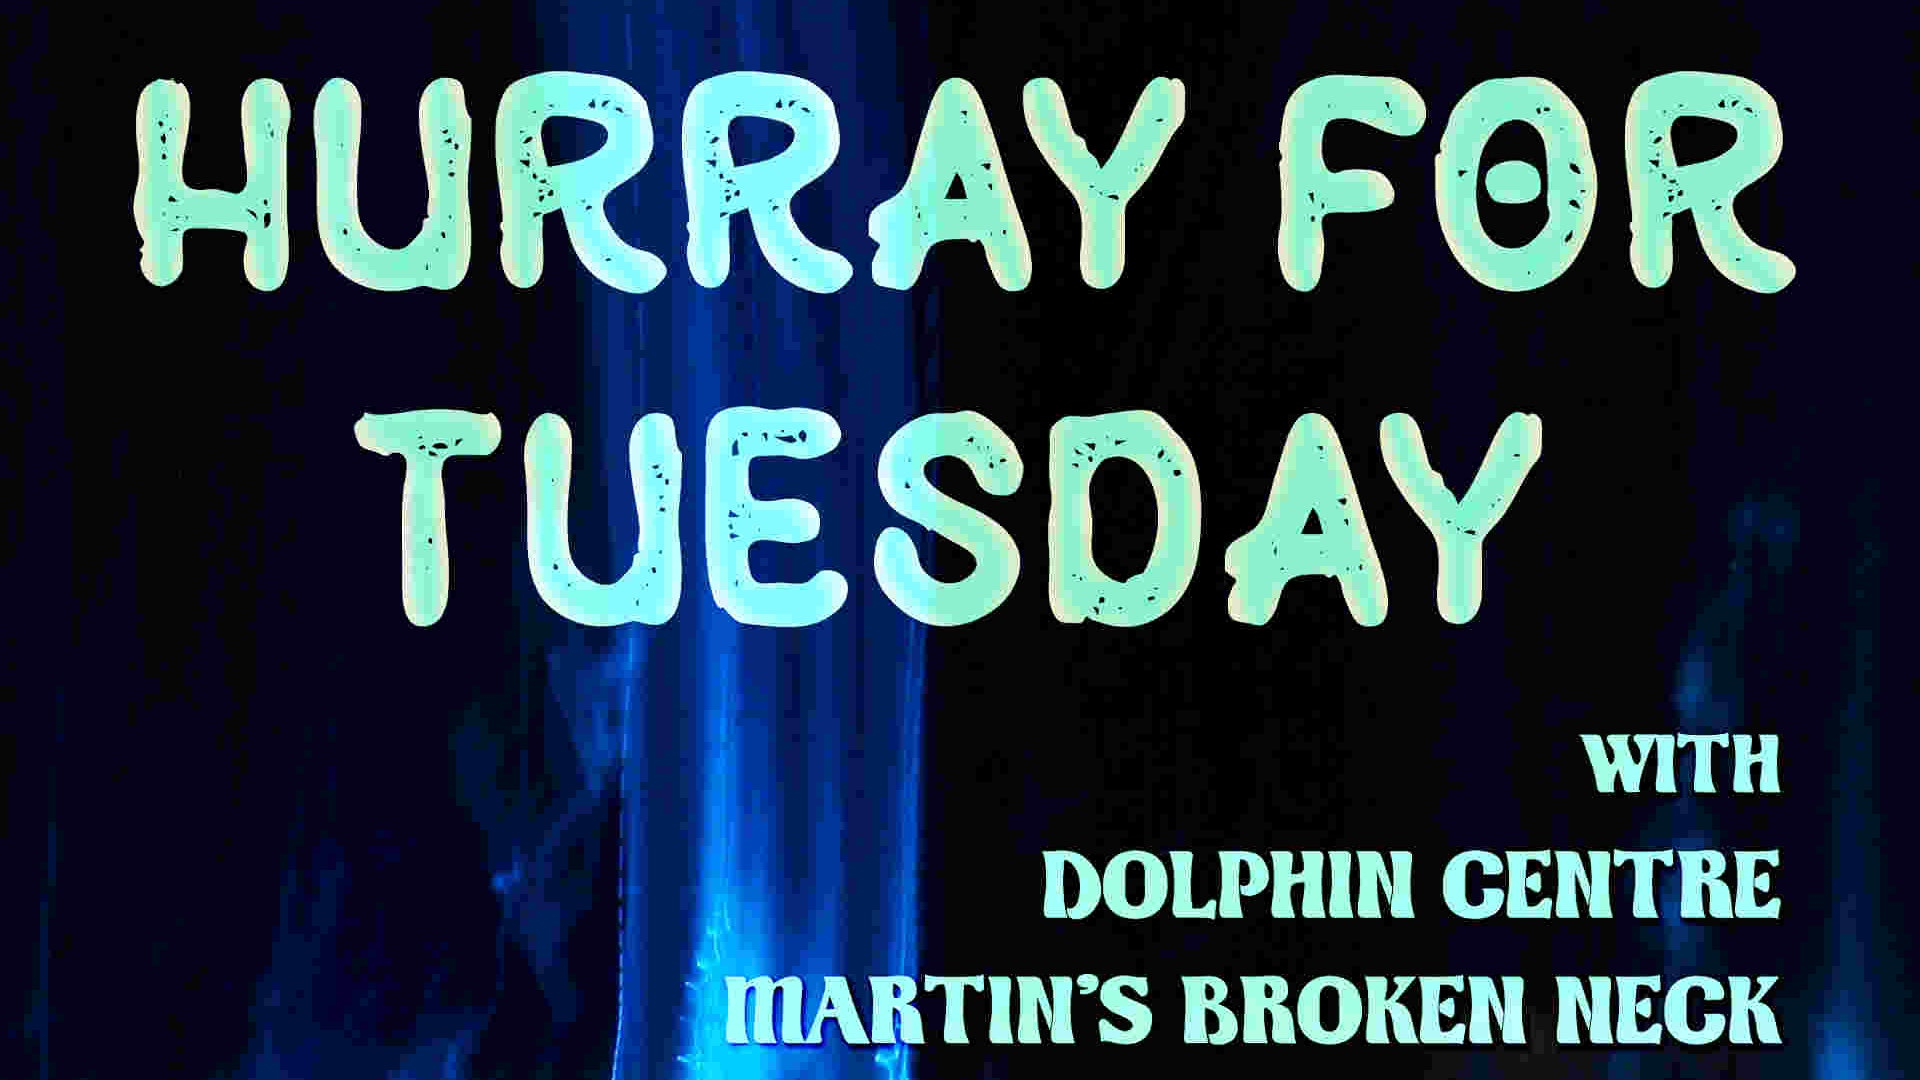 Postponed: Hurray For Tuesday